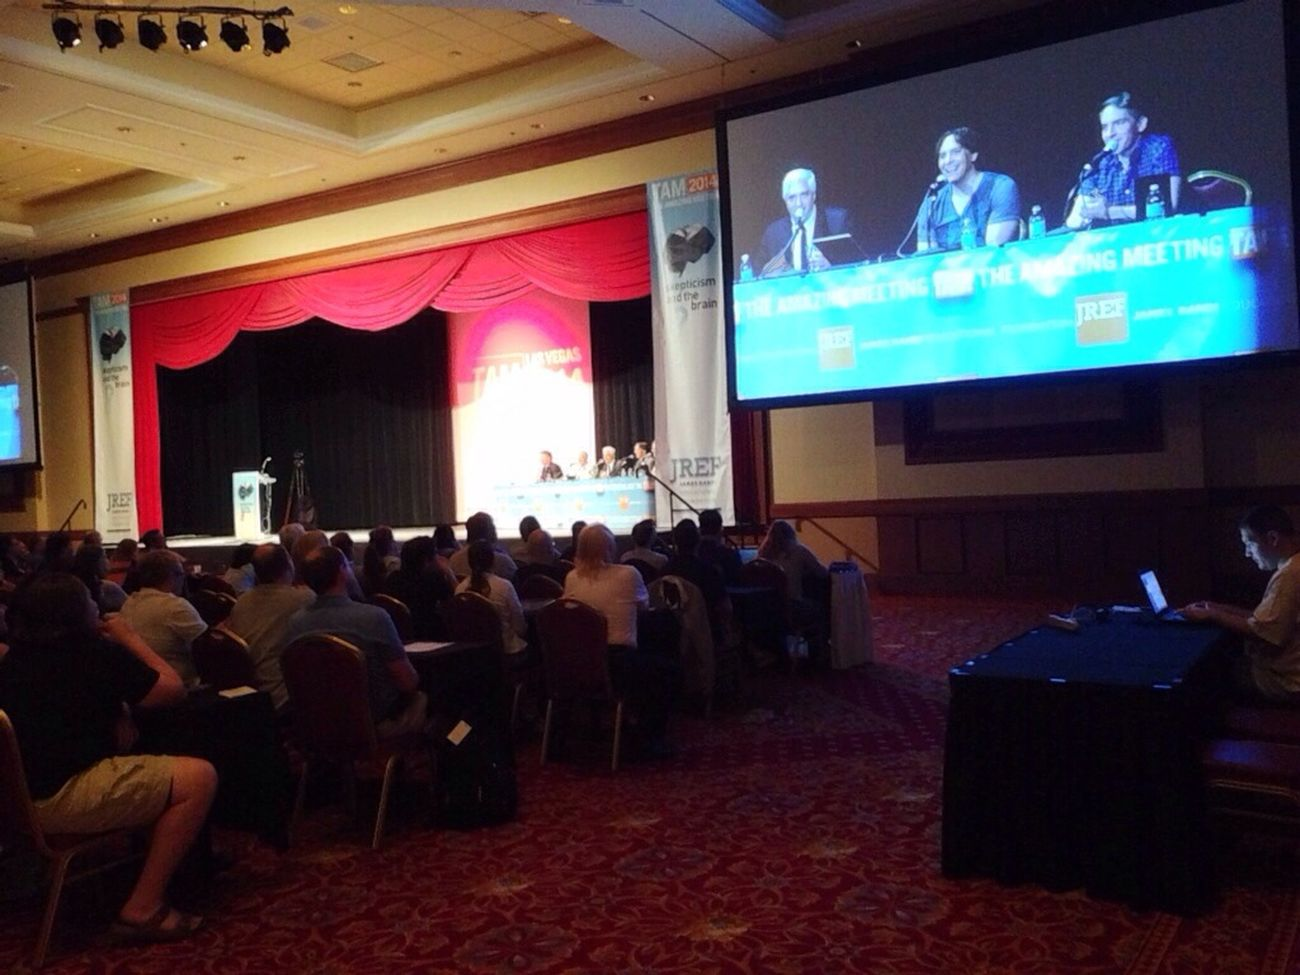 TAM 2014 The Amazing Meeting The Skeptics Guide To The Universe